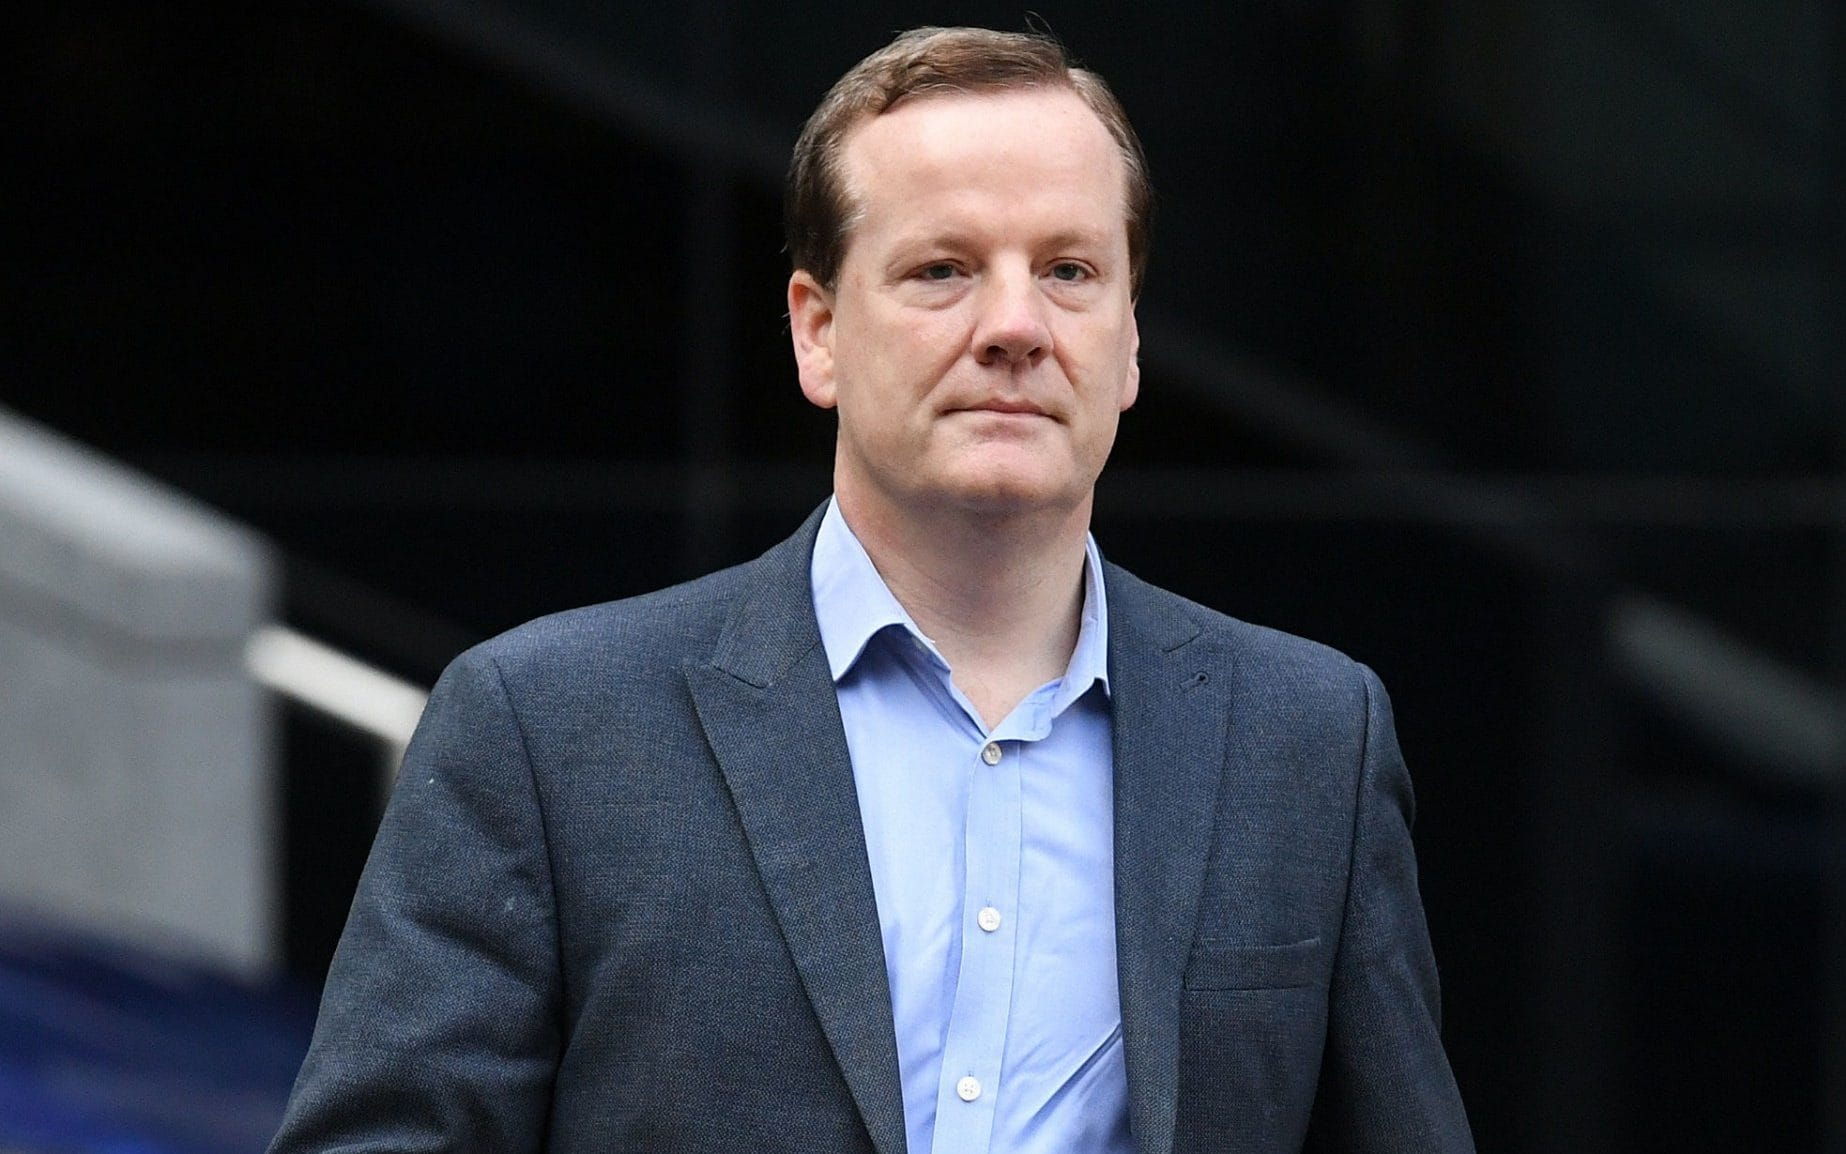 Charlie Elphicke Former Conservative Mp Jailed For Two